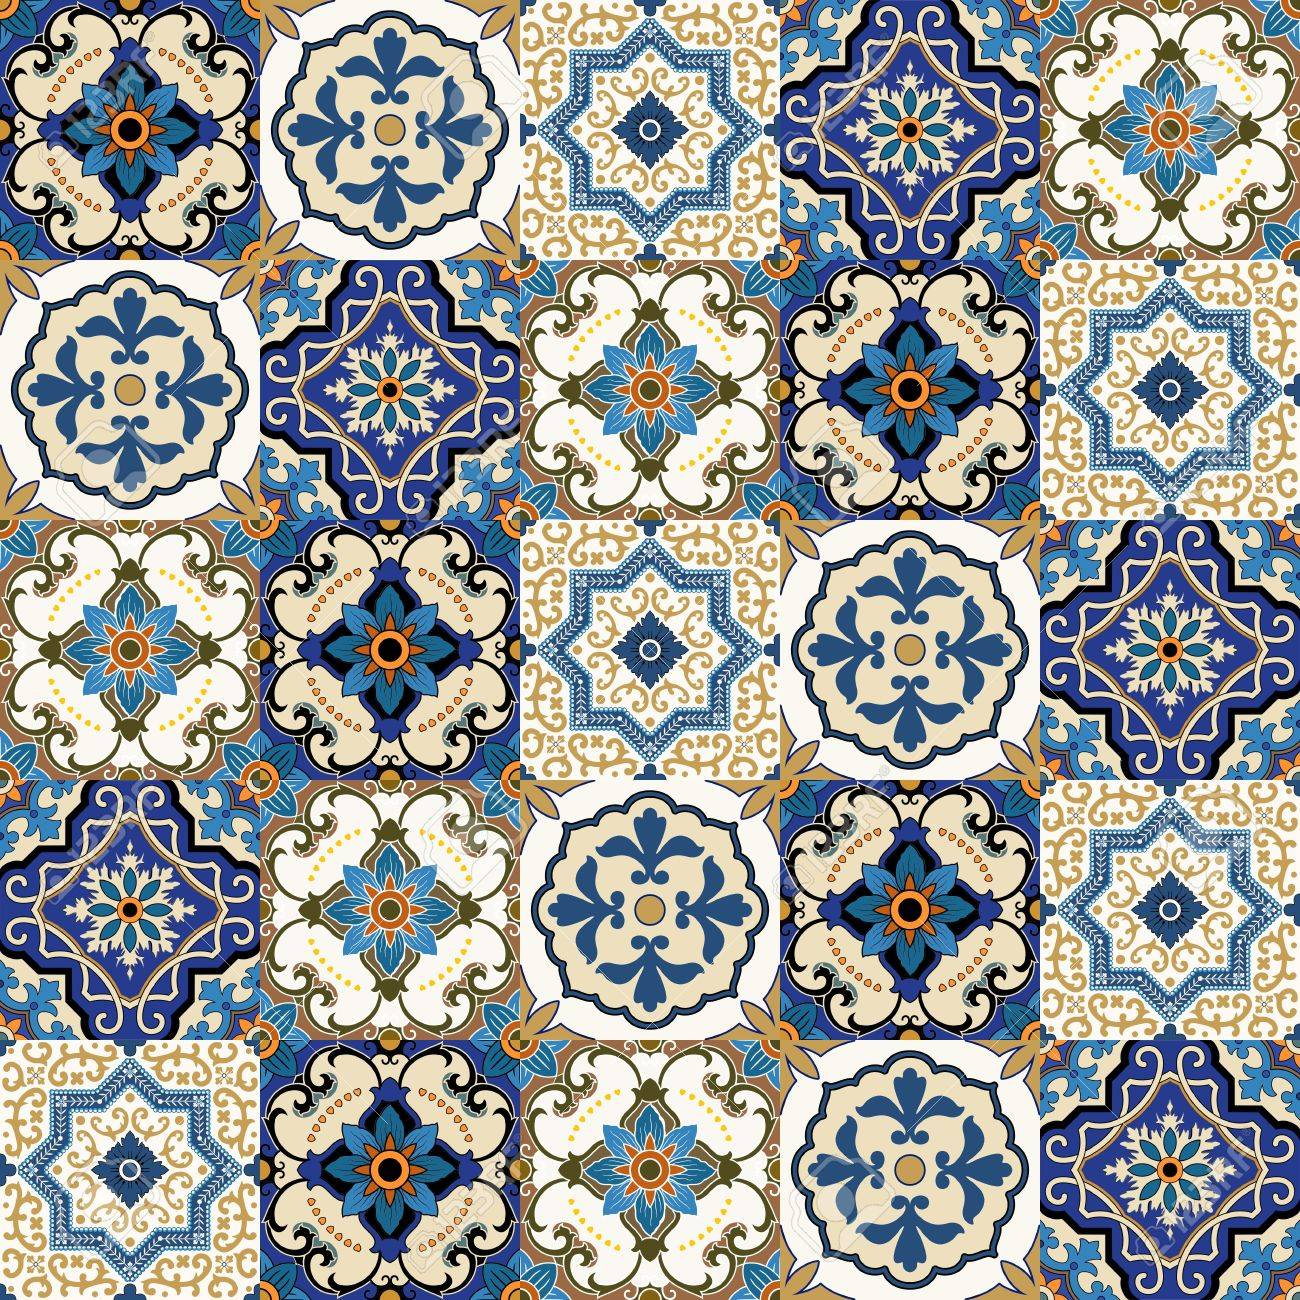 Mega Gorgeous seamless patchwork pattern from colorful Moroccan, Portuguese tiles, Azulejo, ornaments.. Can be used for wallpaper, pattern fills, web page background,surface textures. - 61753124